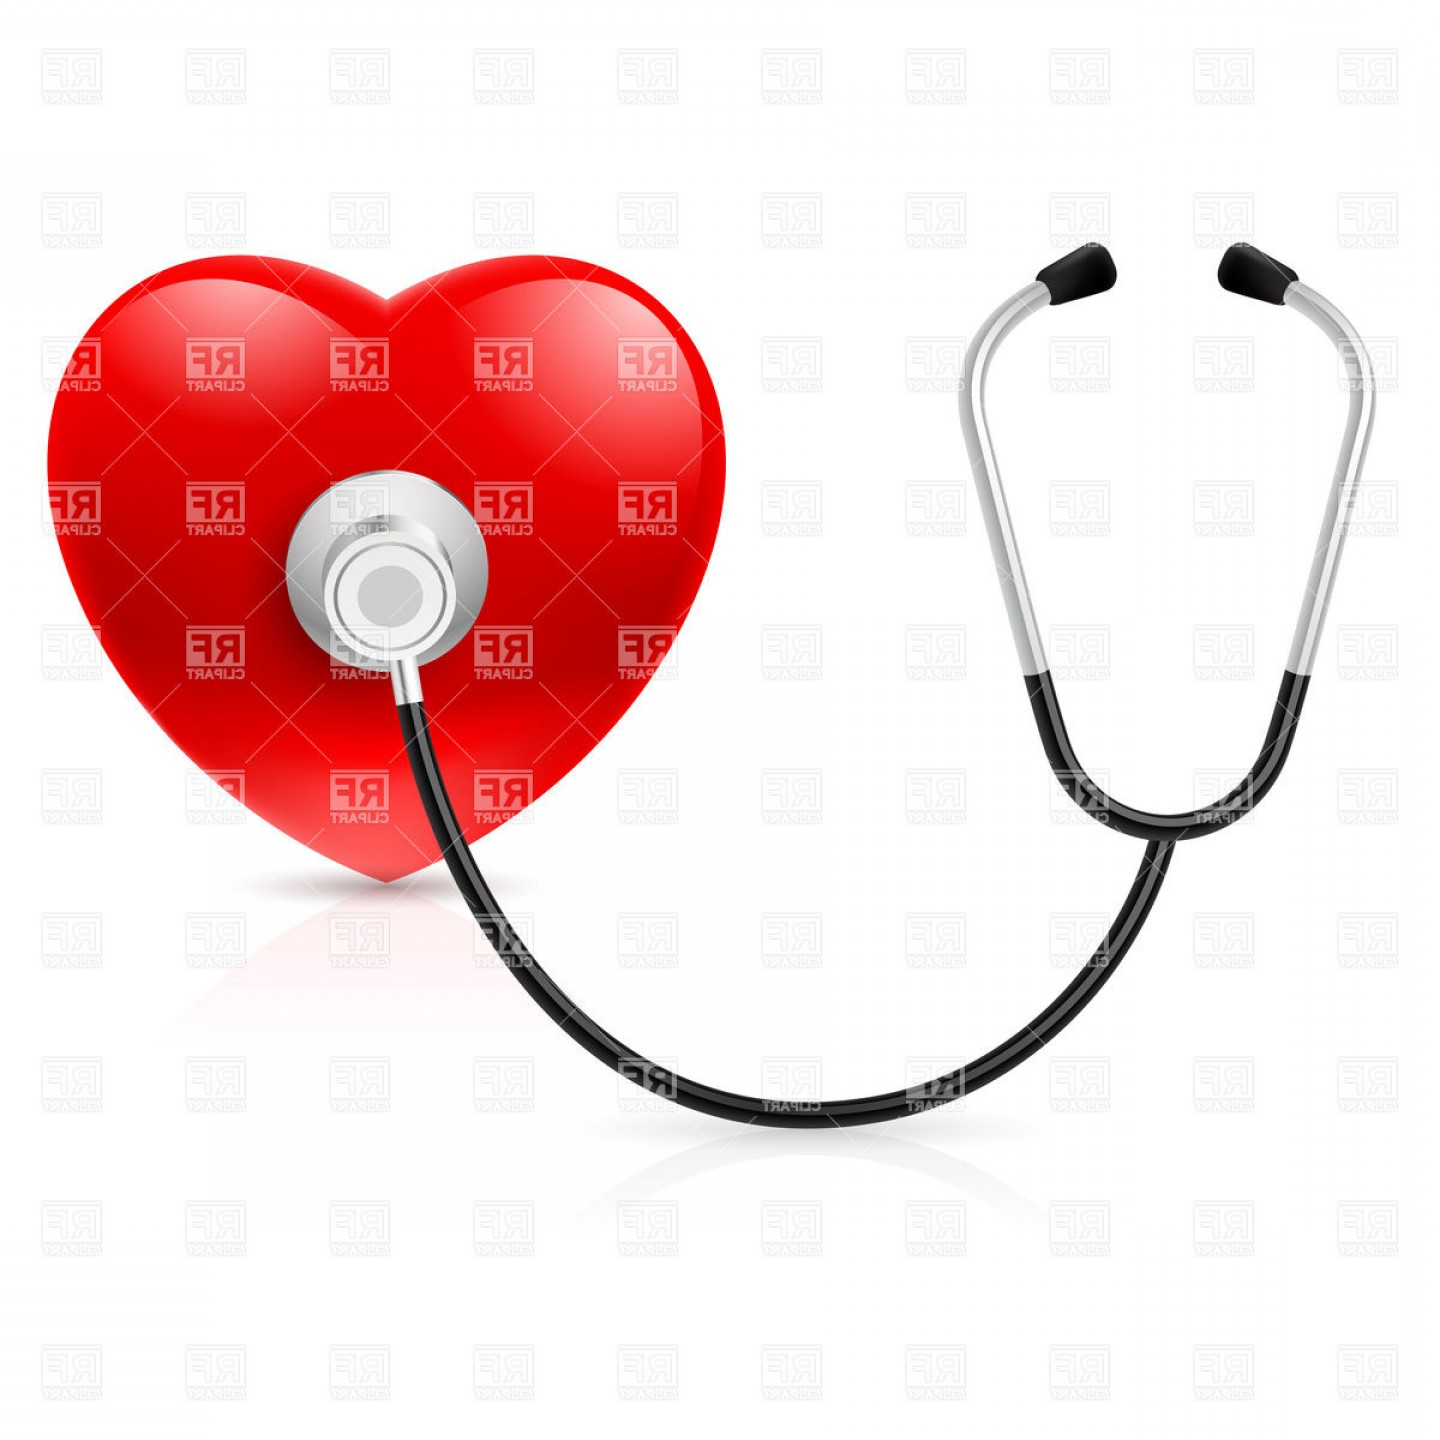 Stethoscope With Heart Vector Art: Stethoscope And Heart Vector Clipart